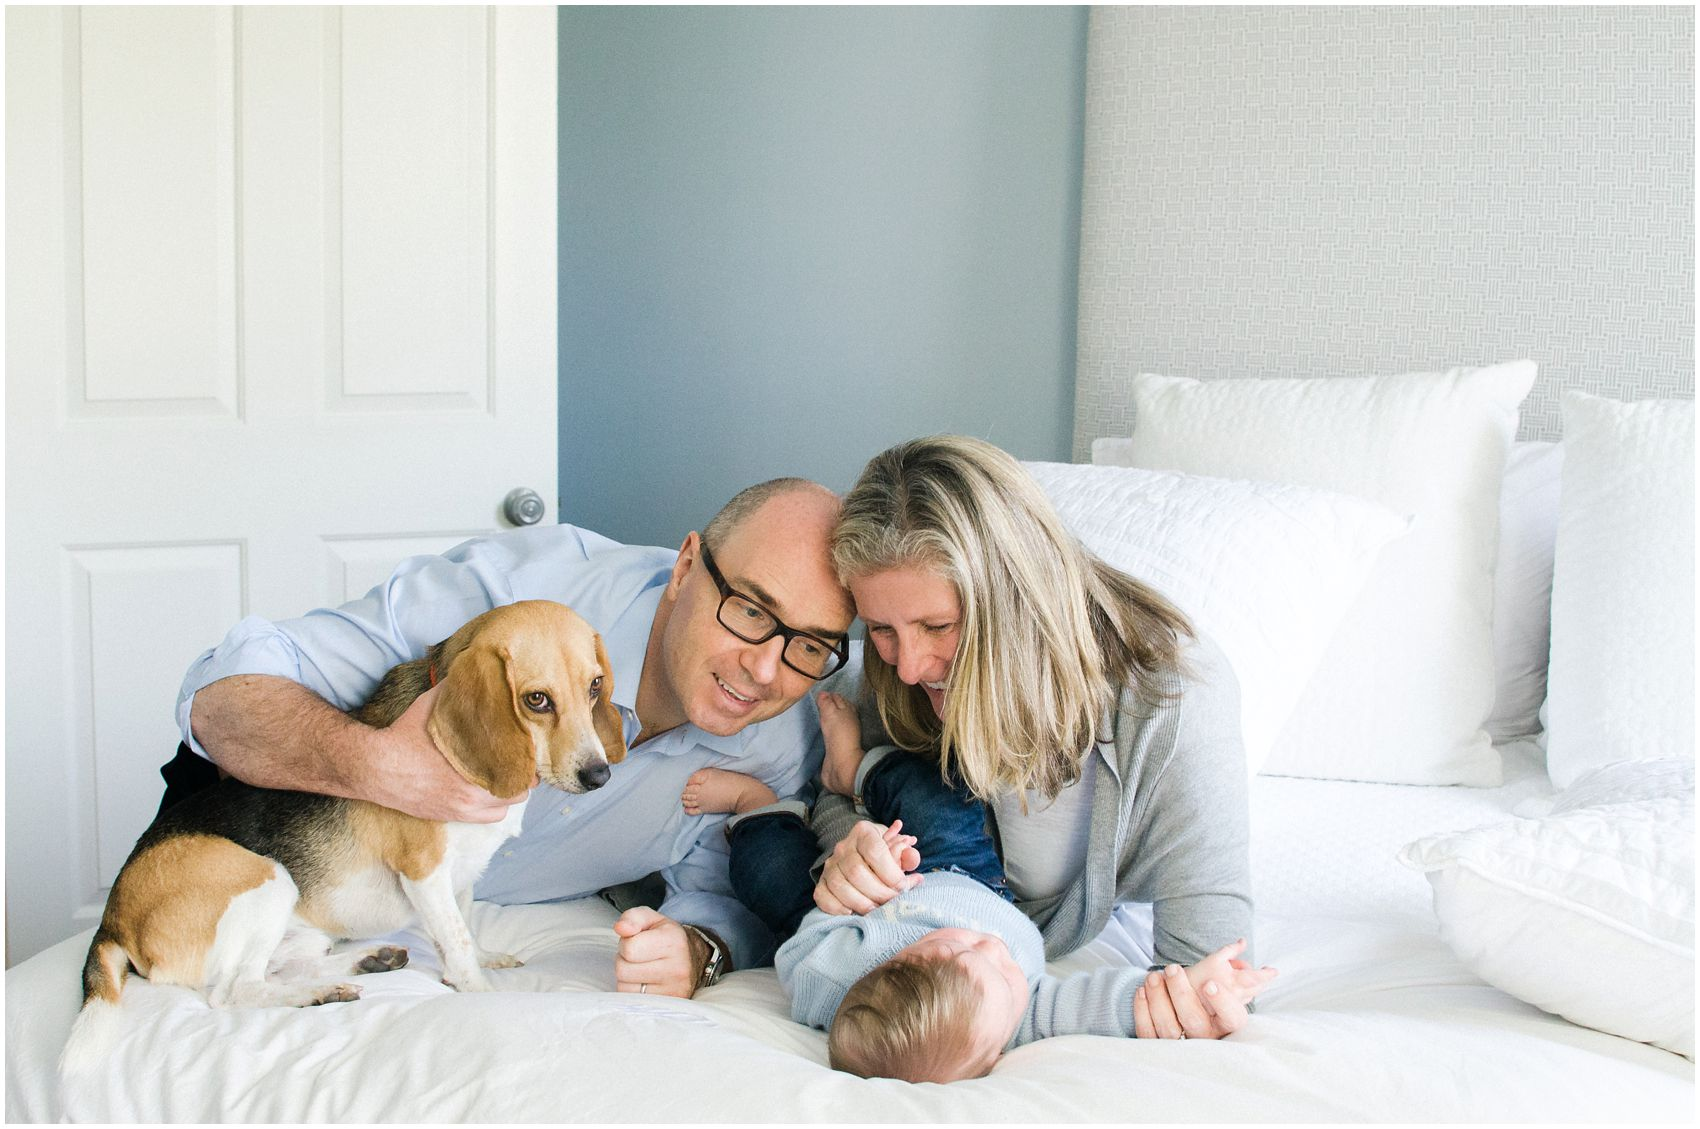 mom and dad in a white bedroom with a family dog and newborn with Miriam Dubinsky Photography